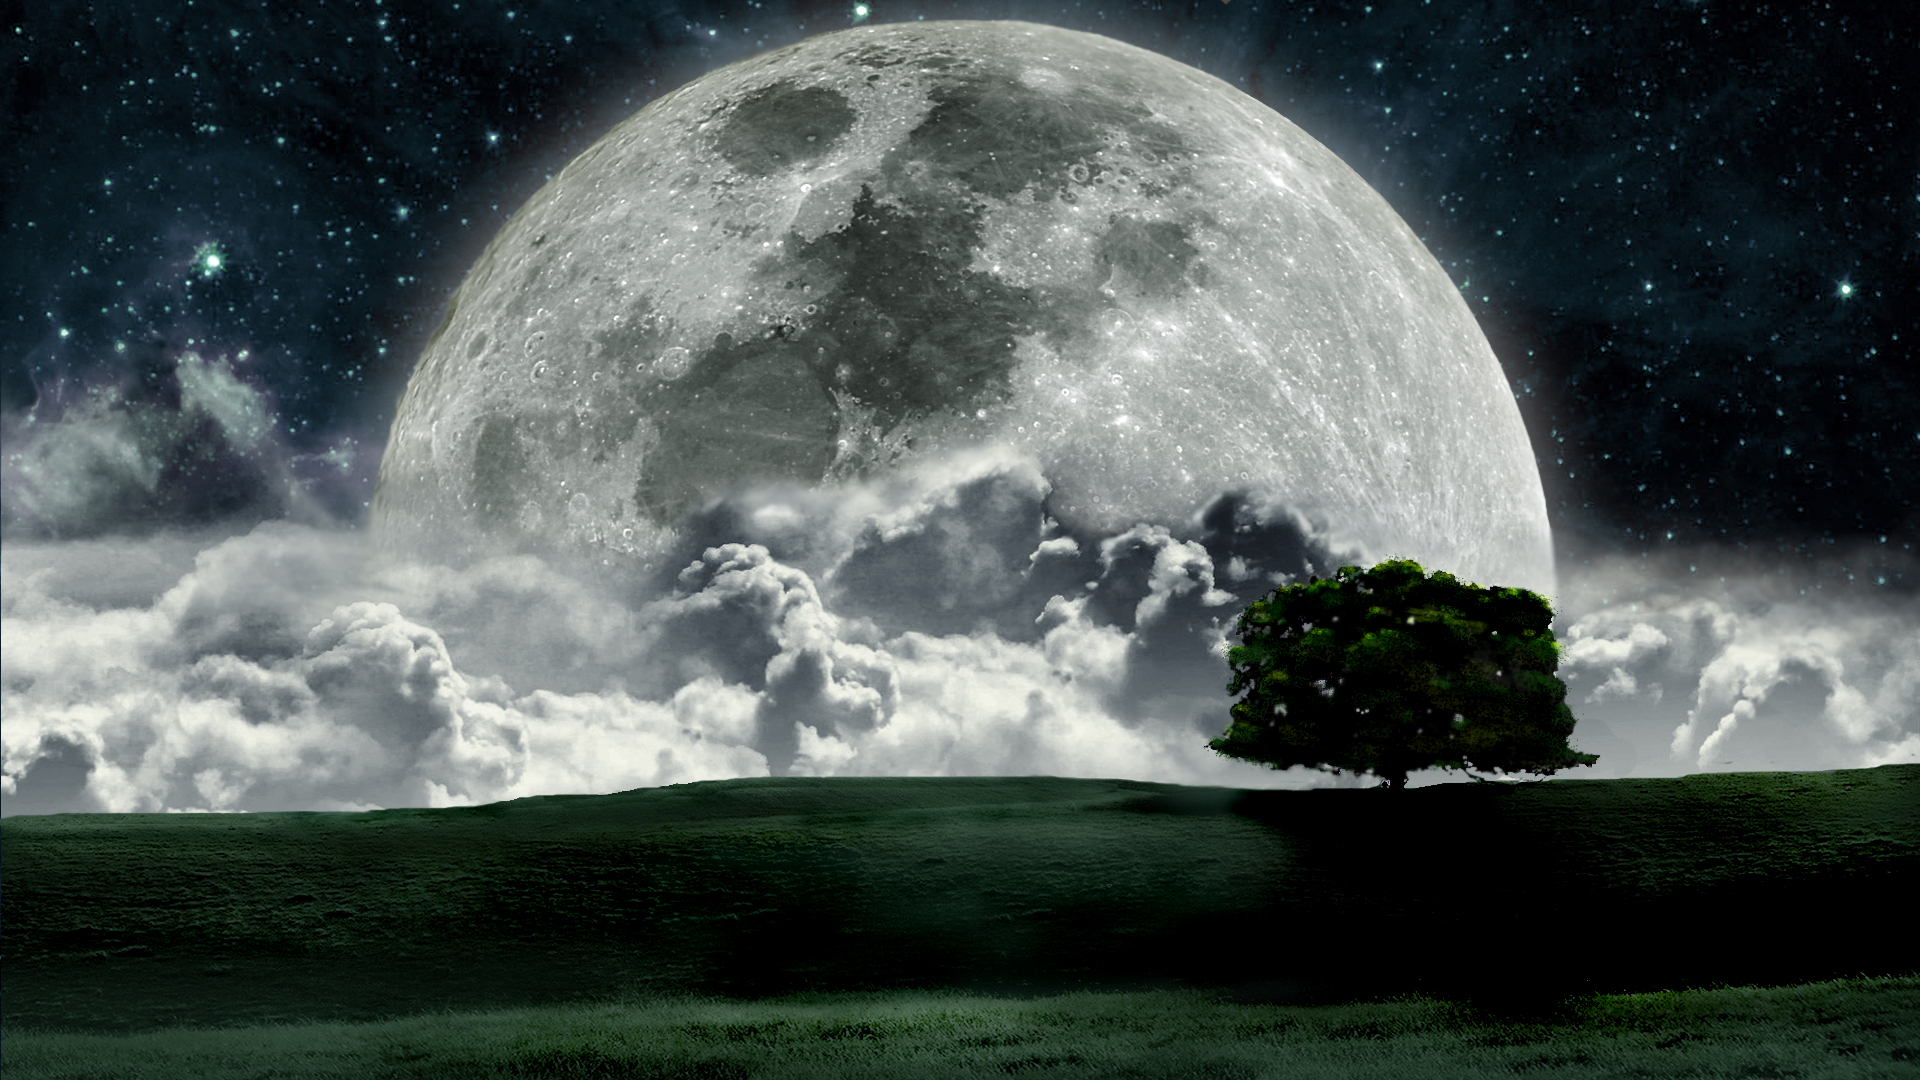 cool wallpapers resolution wallpaper moon photo 1920x1080 1920x1080